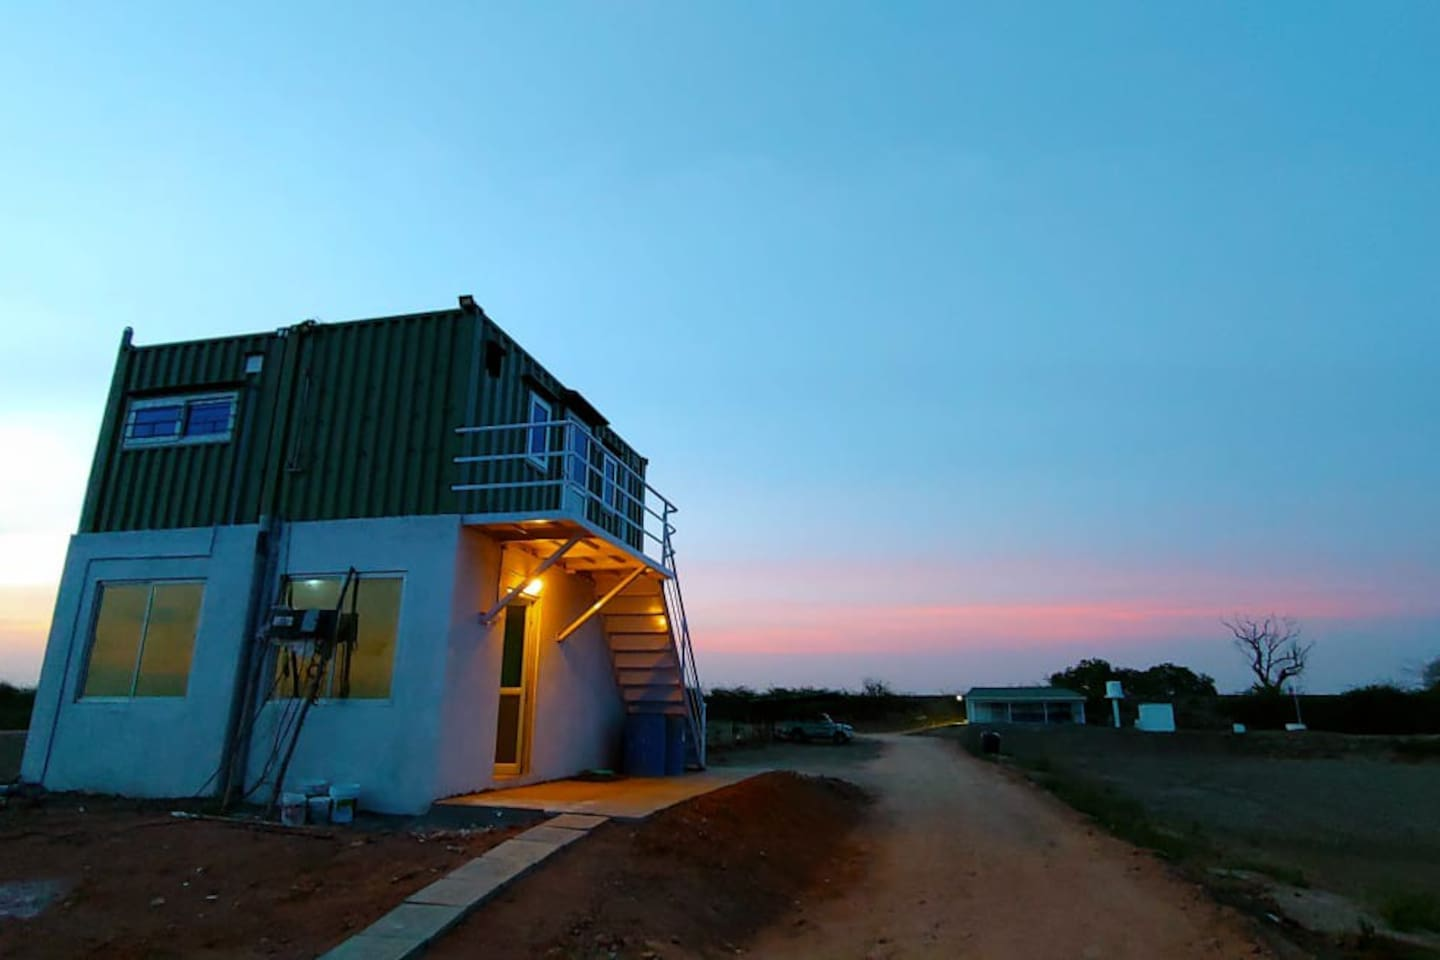 Container rooms during Sunset